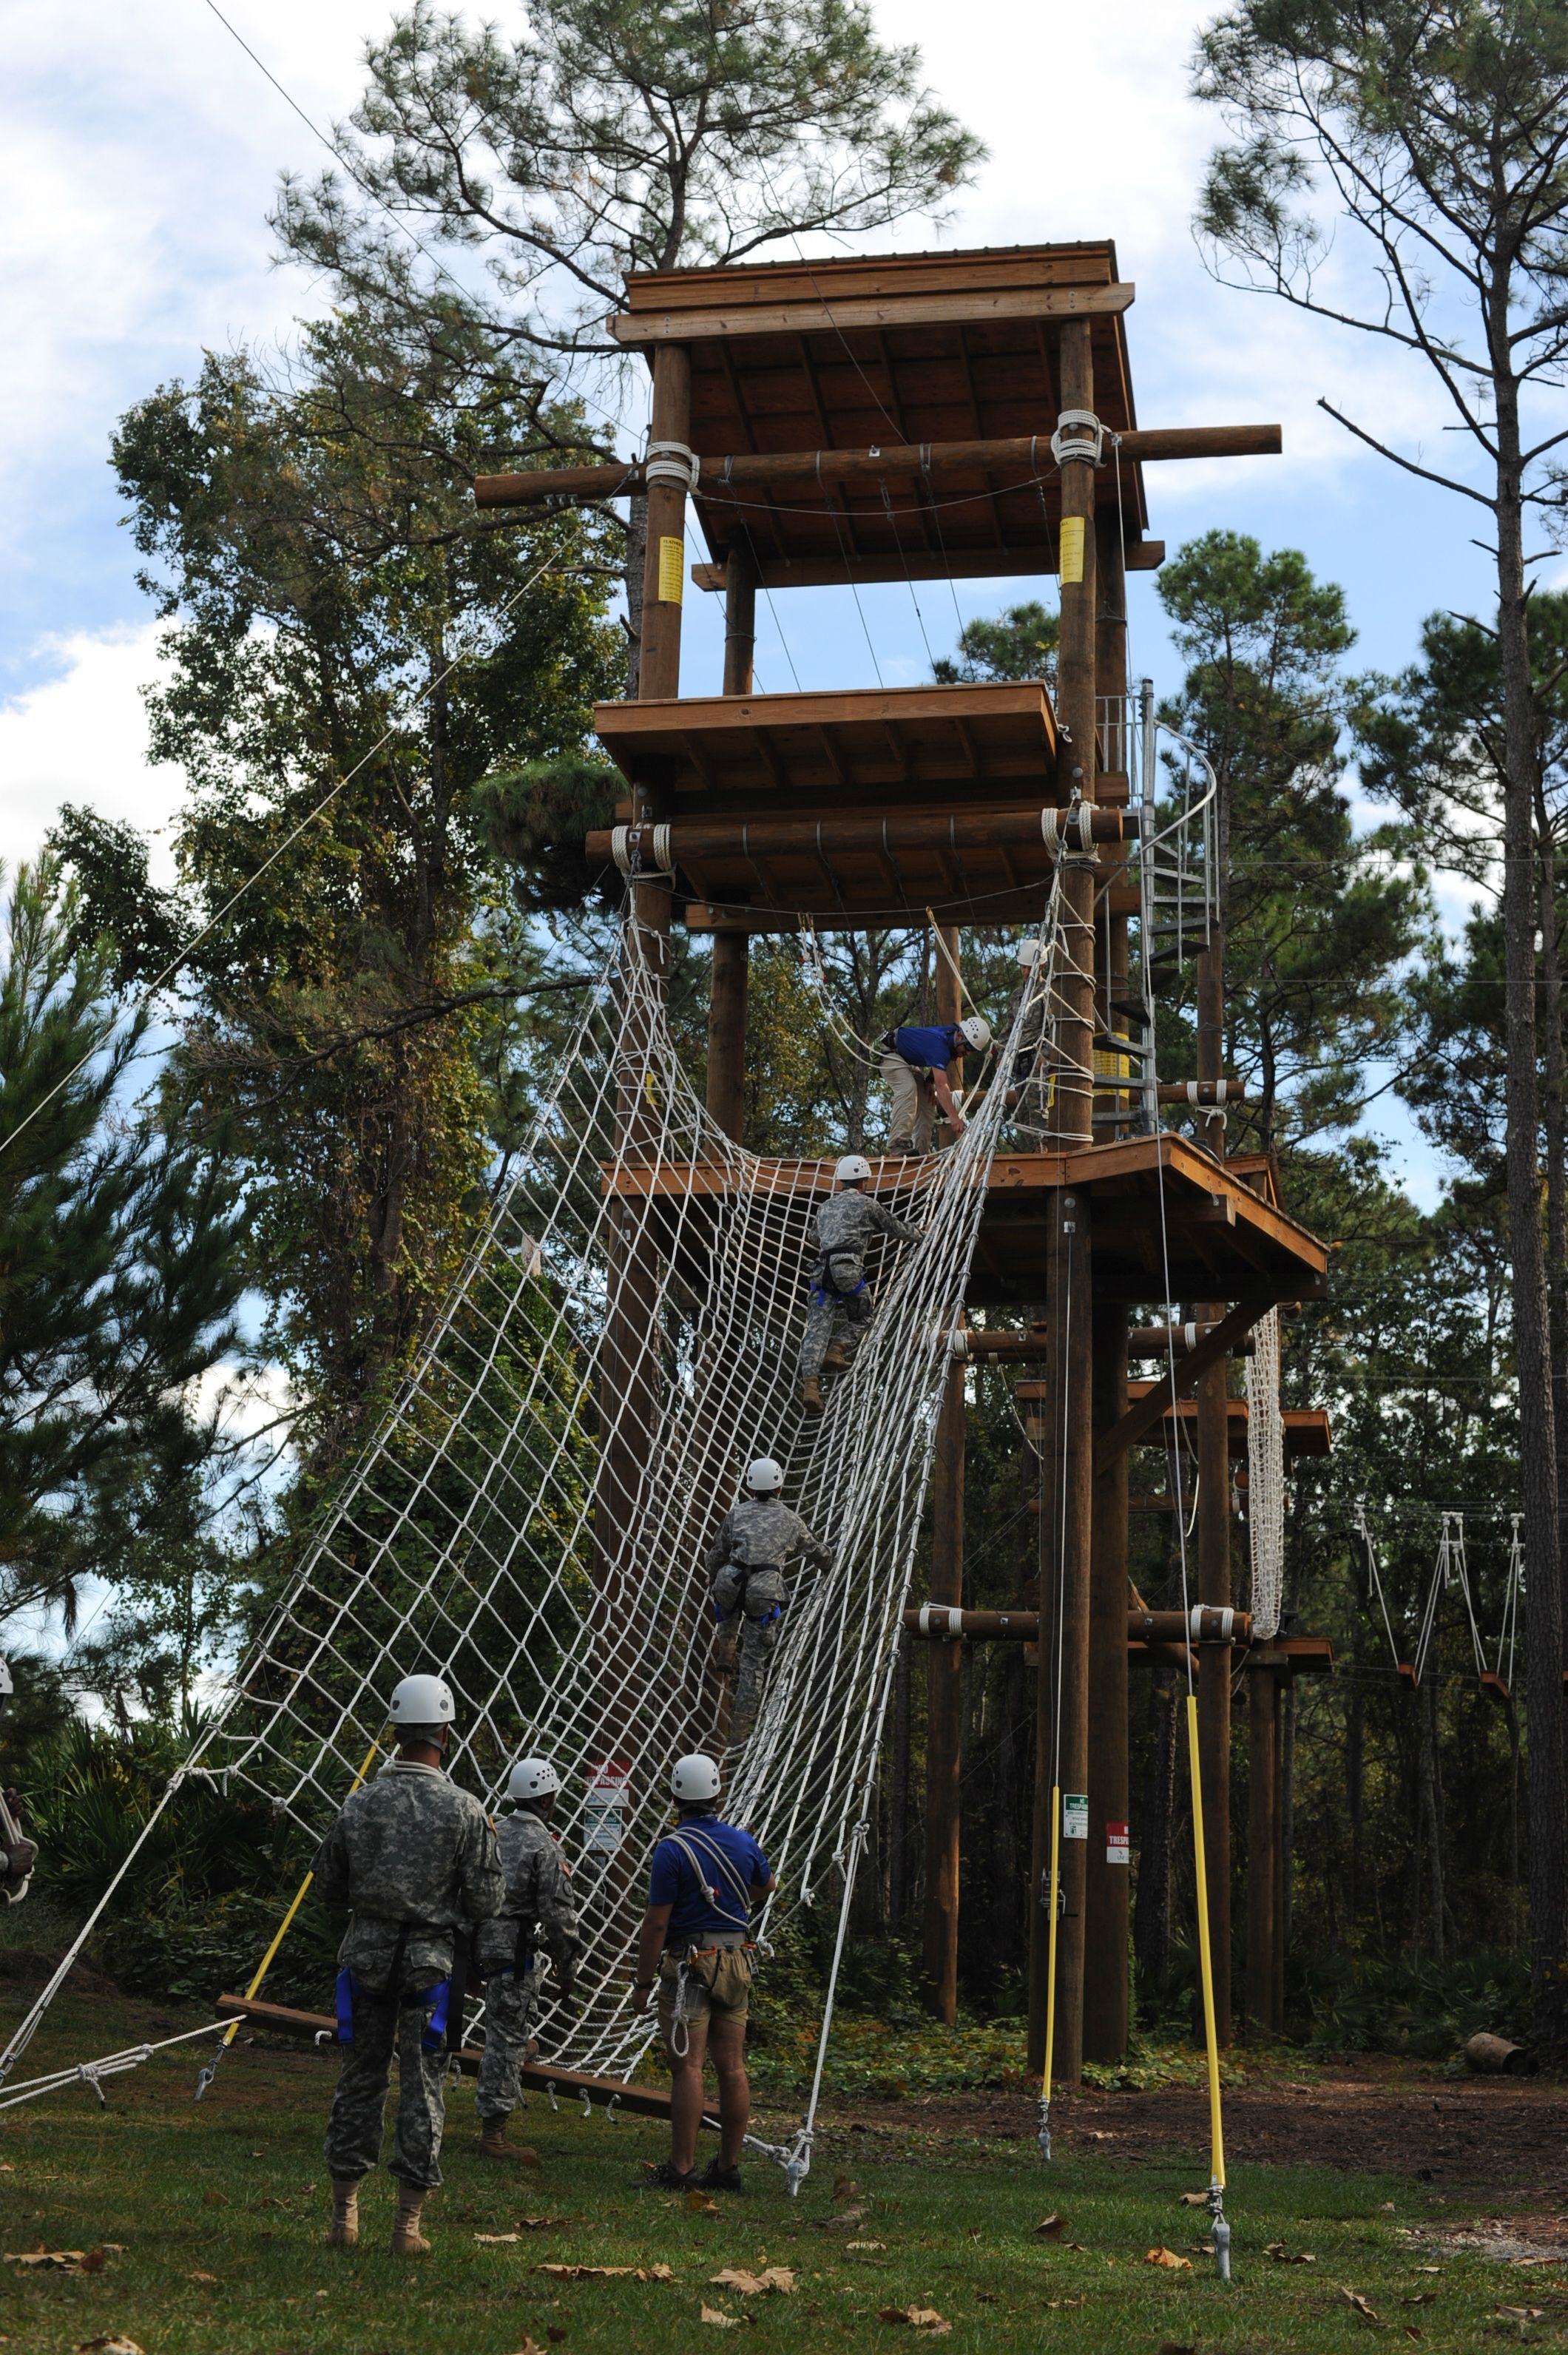 Rotc Students Take A Turn On The Osprey Challenge Ropes